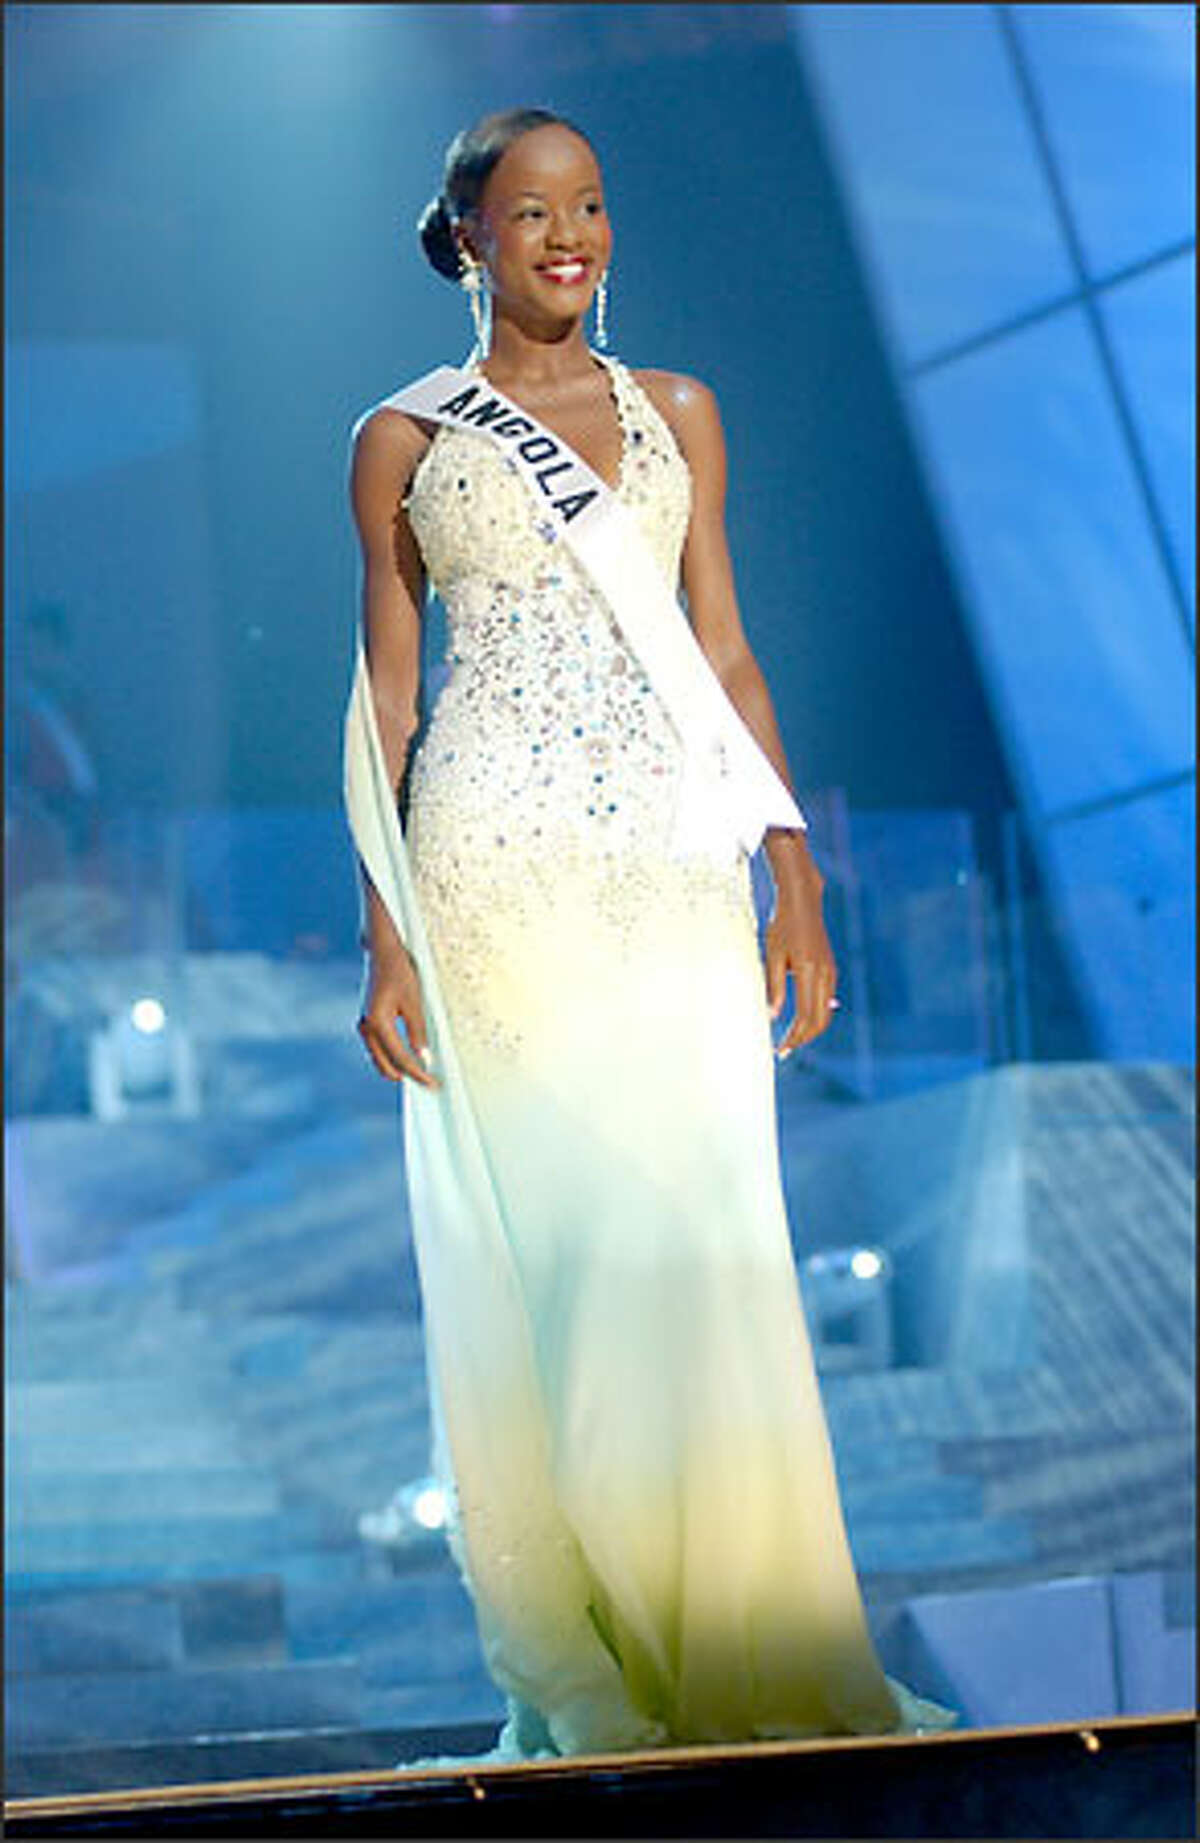 Telma de Jesus Esperanca Sonhi, Miss Angola, competes in an evening gown of her choice during the 2004 Miss Universe Presentation Show at CEMEXPO in Quito, Ecuador on May 27. Each delegate was judged by a preliminary panel of distinguished judges in three categories consisting of individual interviews, swimsuit competition and evening gown competition. The scores will be tallied and the top 15 delegates will be announced during the NBC broadcast of the 53rd annual Miss Universe competition from Quito on June 1 at 9 p.m. (delayed PT).